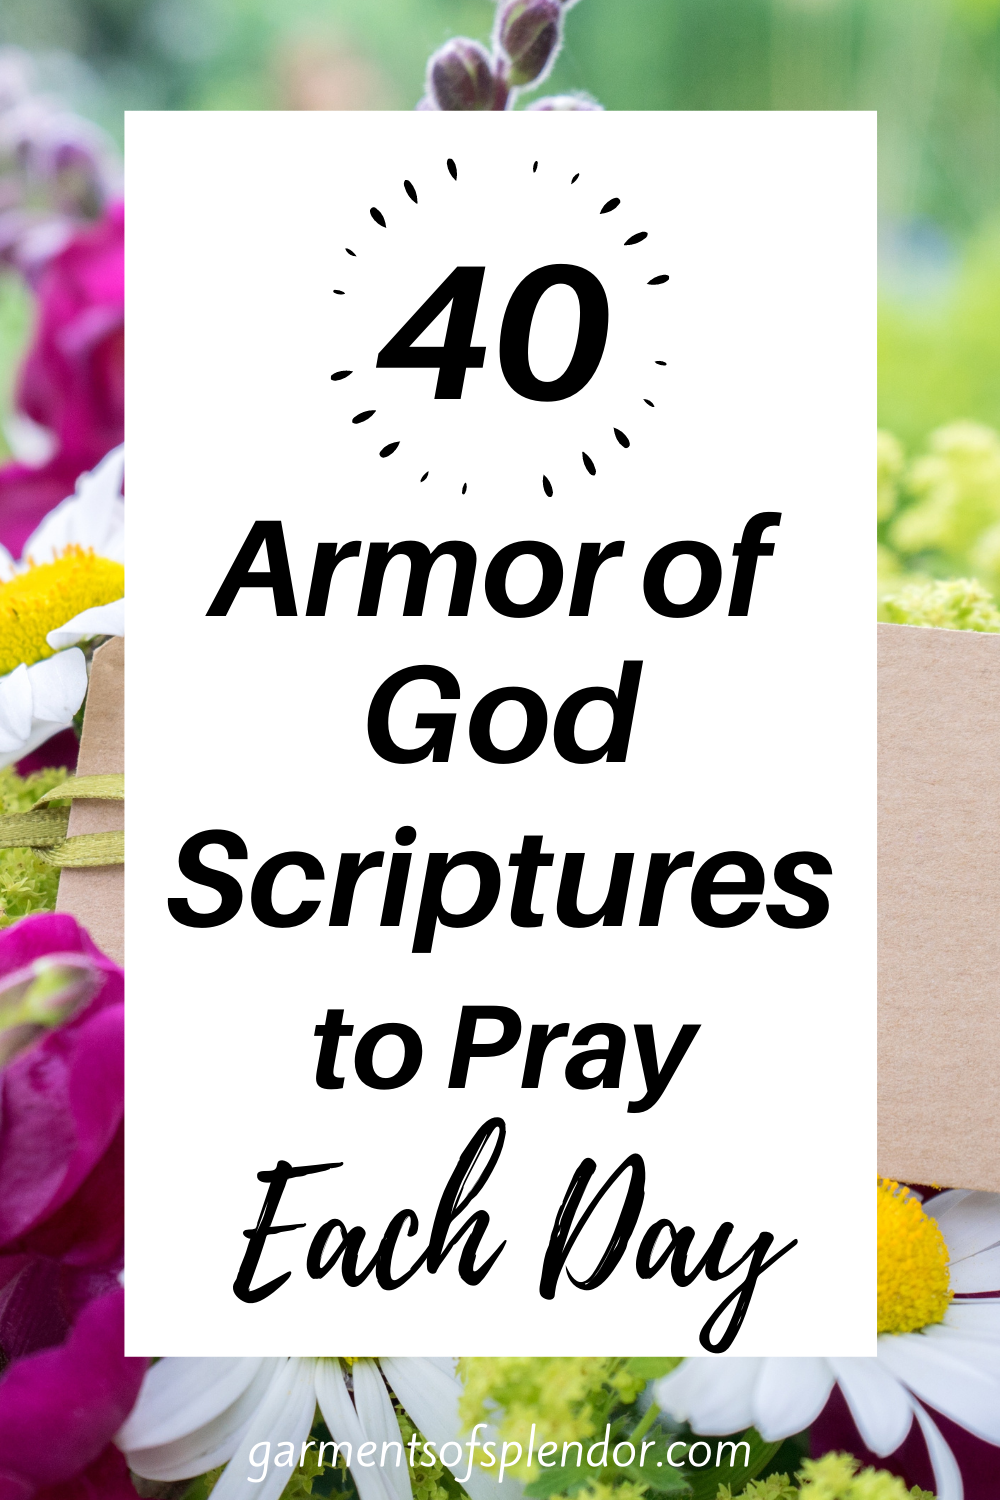 25 Armor of God Scriptures to Read Each Day